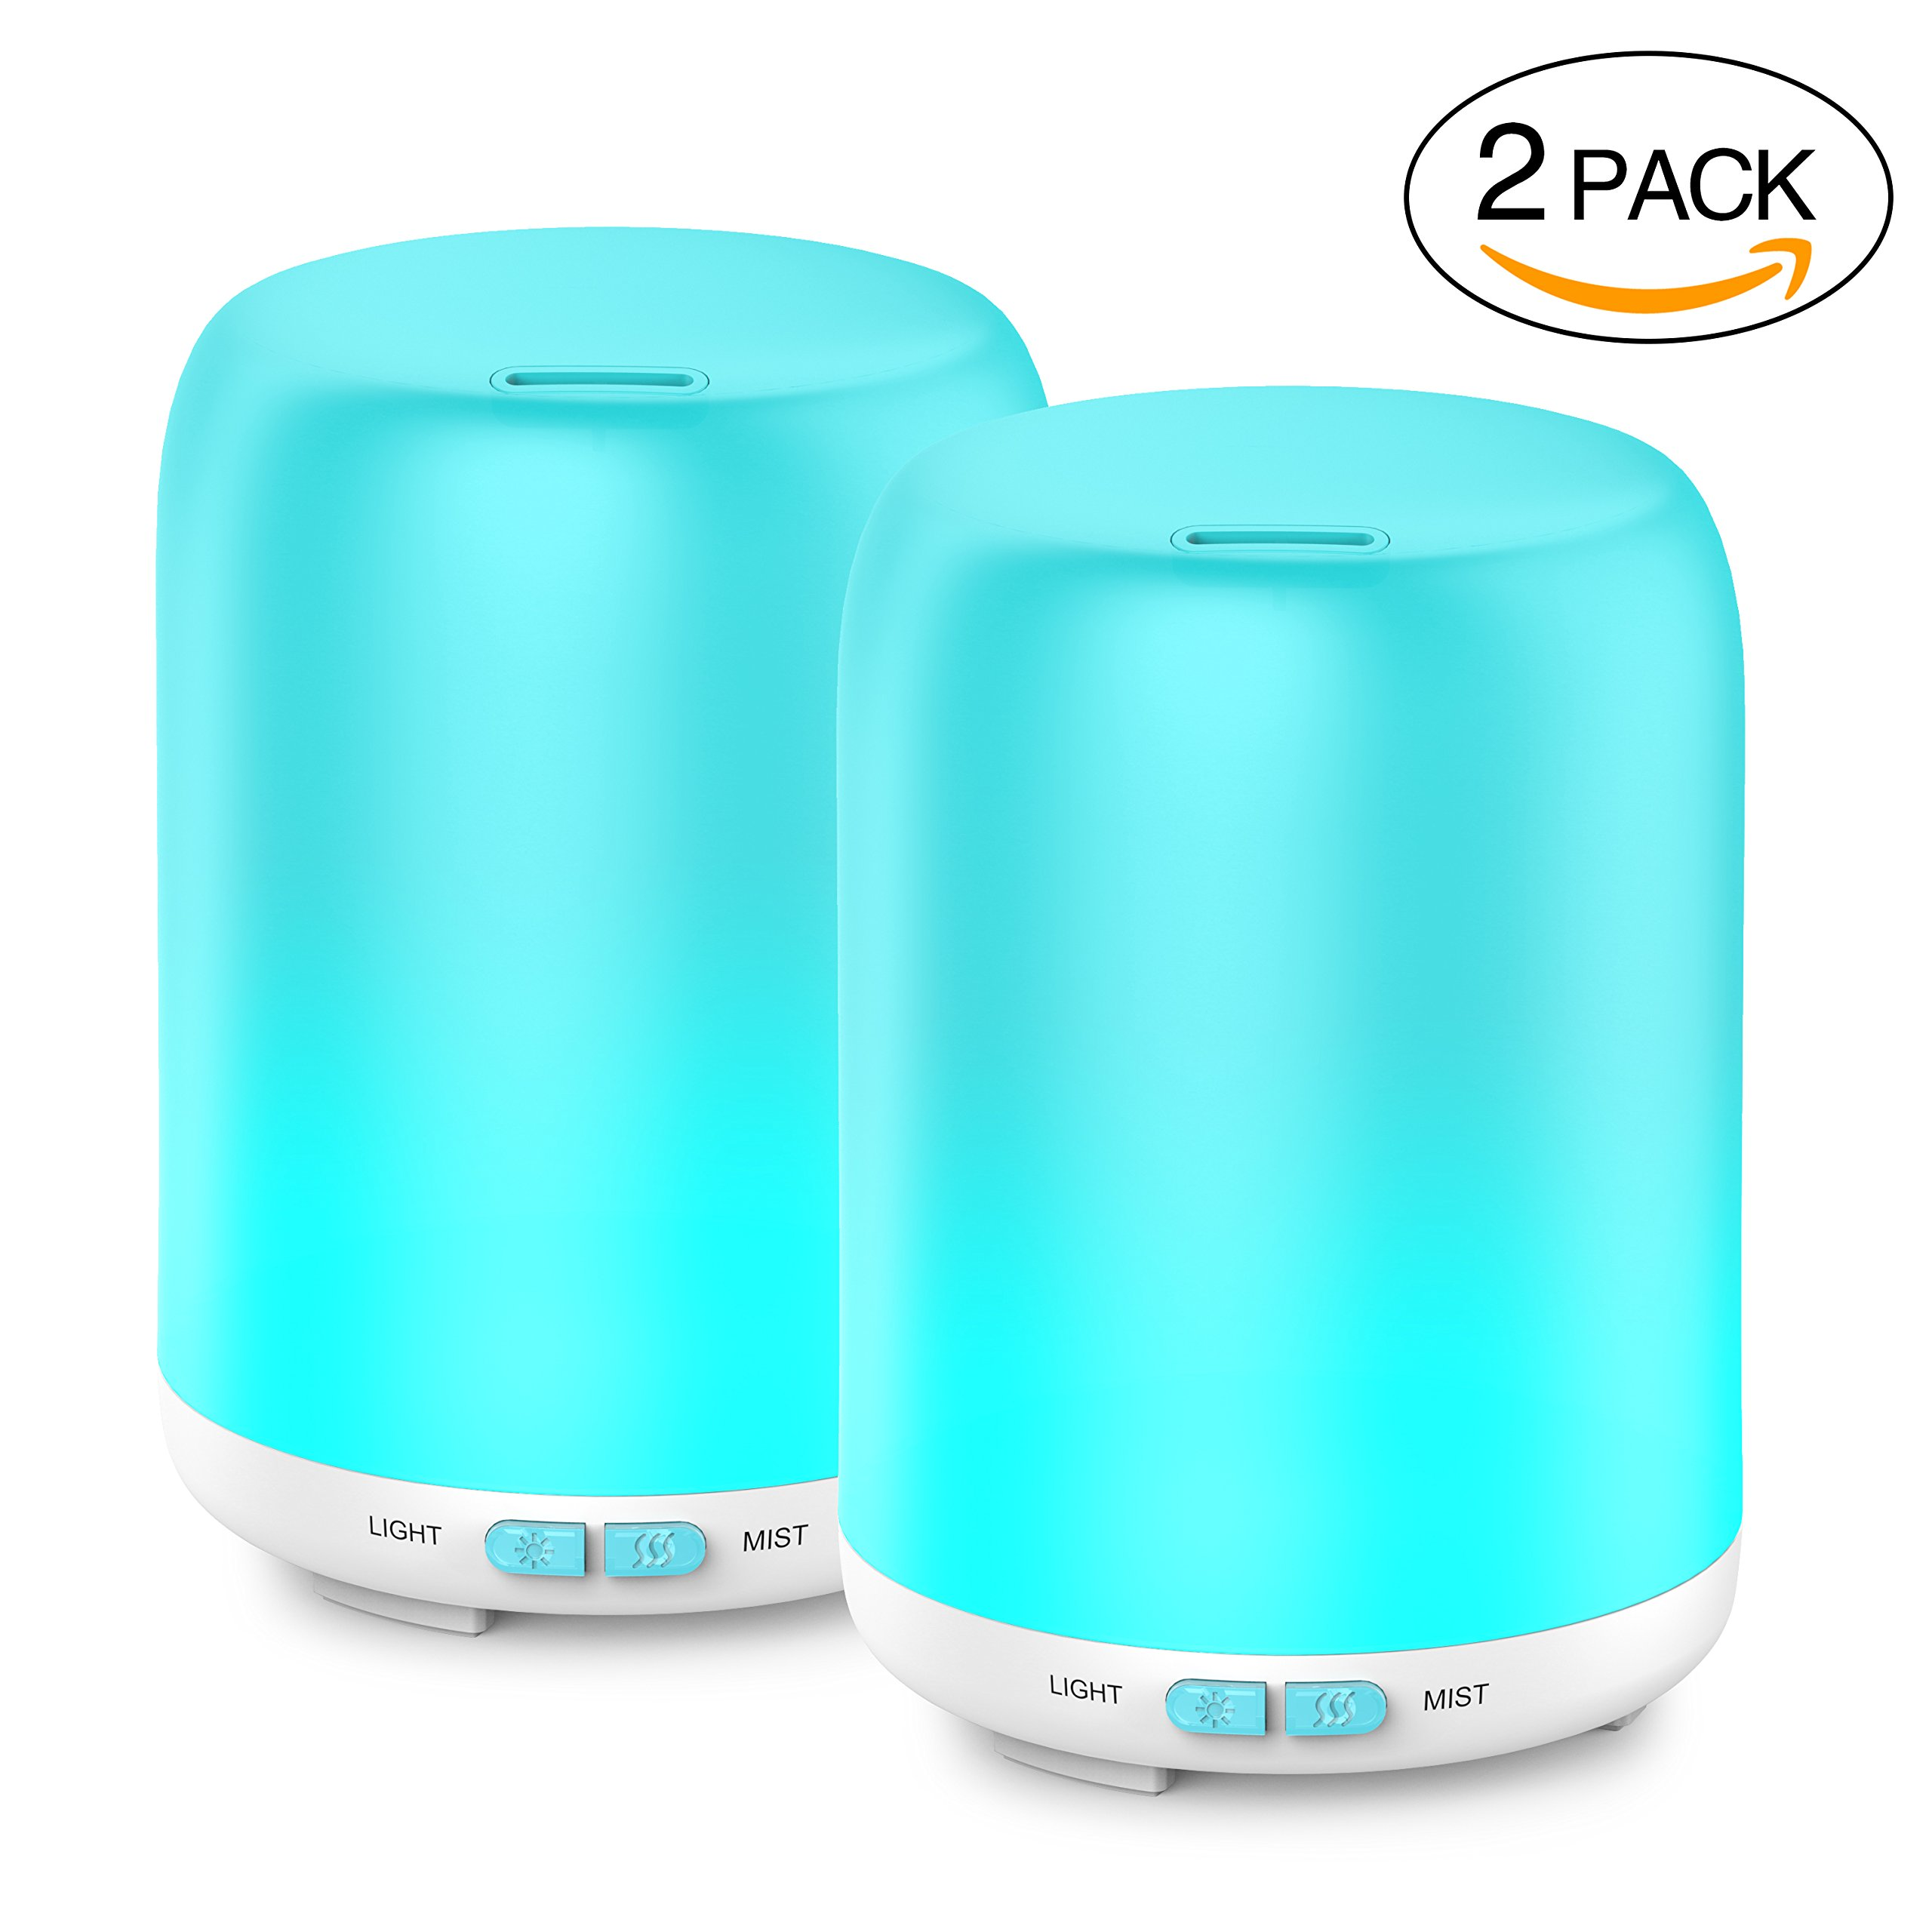 Essential Oil Diffuser, 2 Pack Aroma Diffuser Ultrasonic Cool Mist Aromatherapy with 7 LED lights, Waterless Auto Shut-off for Home Spa Baby Bedroom, 120ml